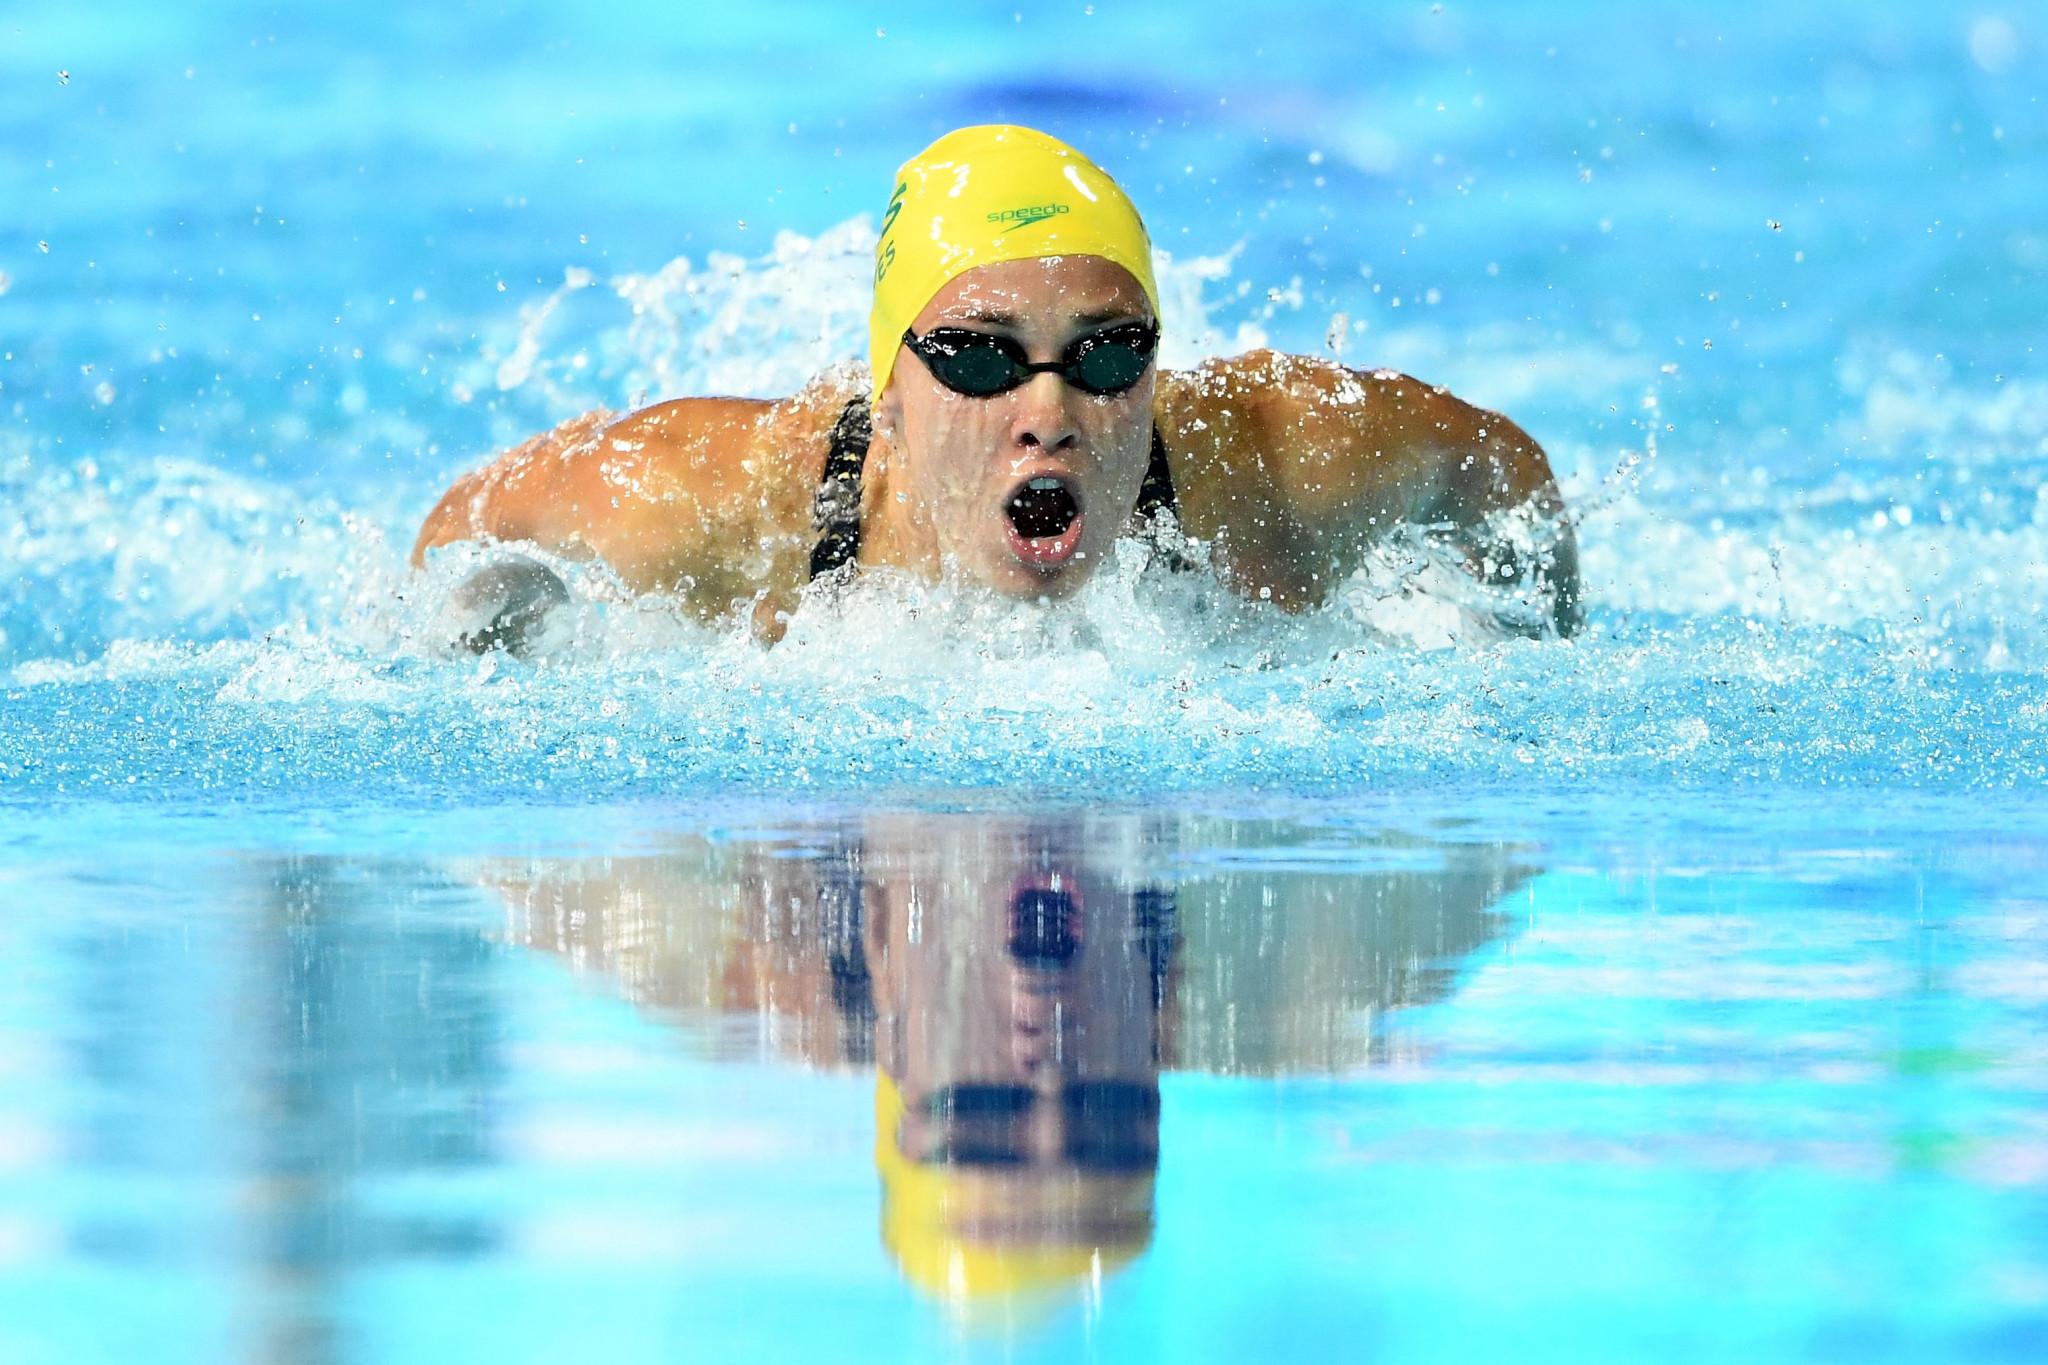 Madeline Groves hopes to bounce back from a cancer scare to win medals in Tokyo ©Getty Images